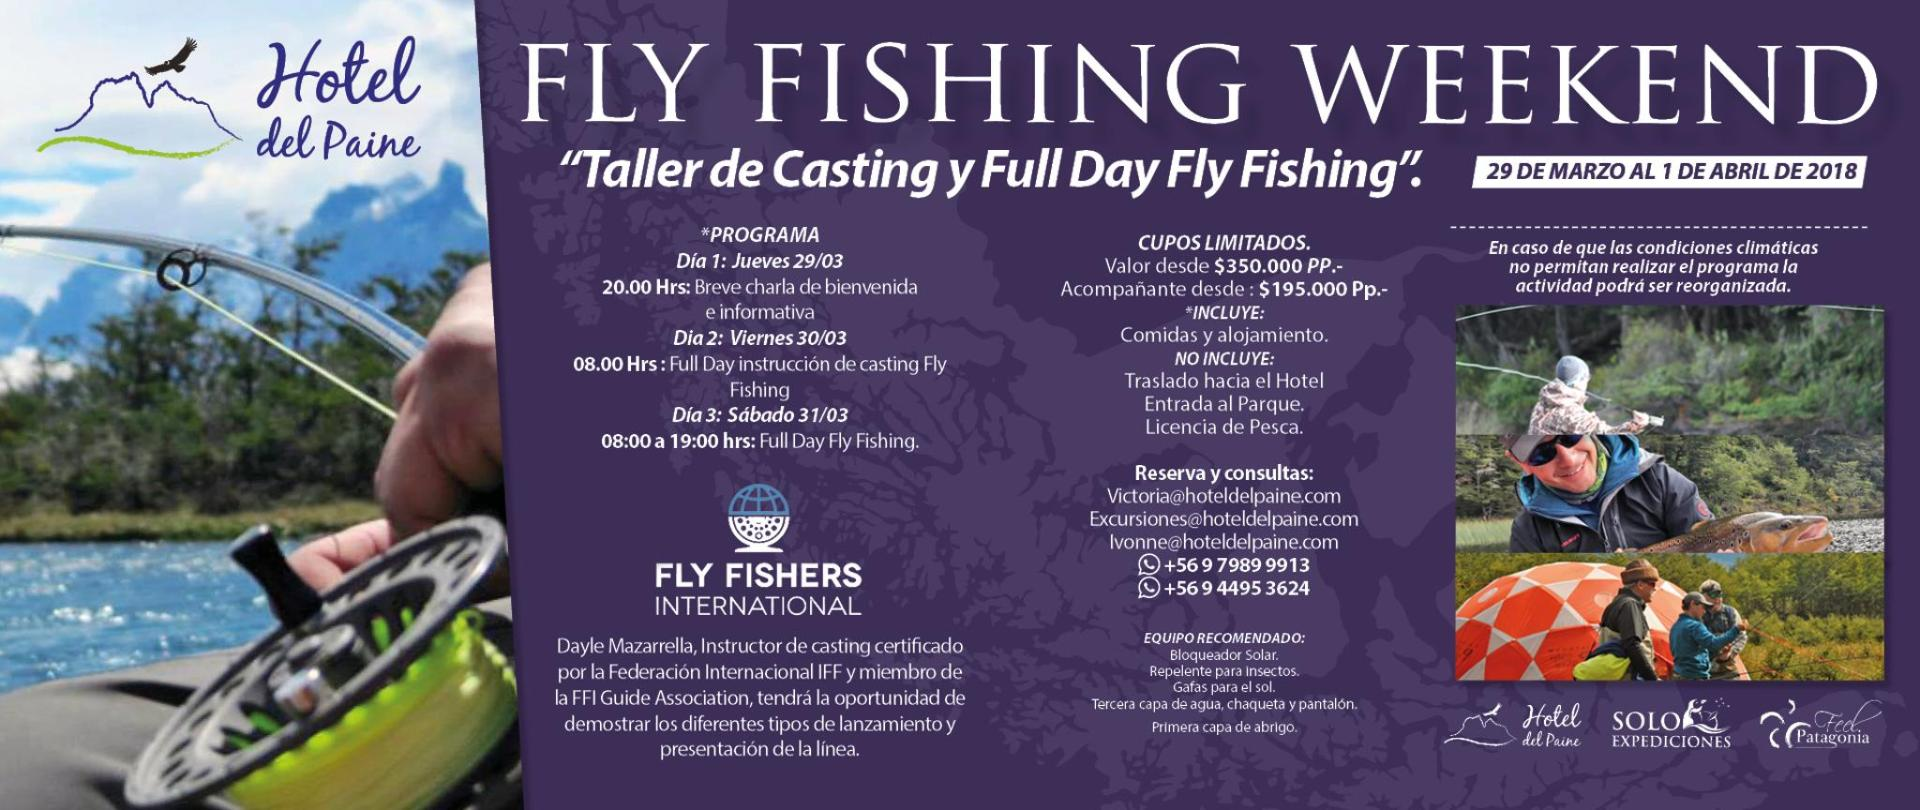 Aviso Fly Fishing Weekend para Web.jpg